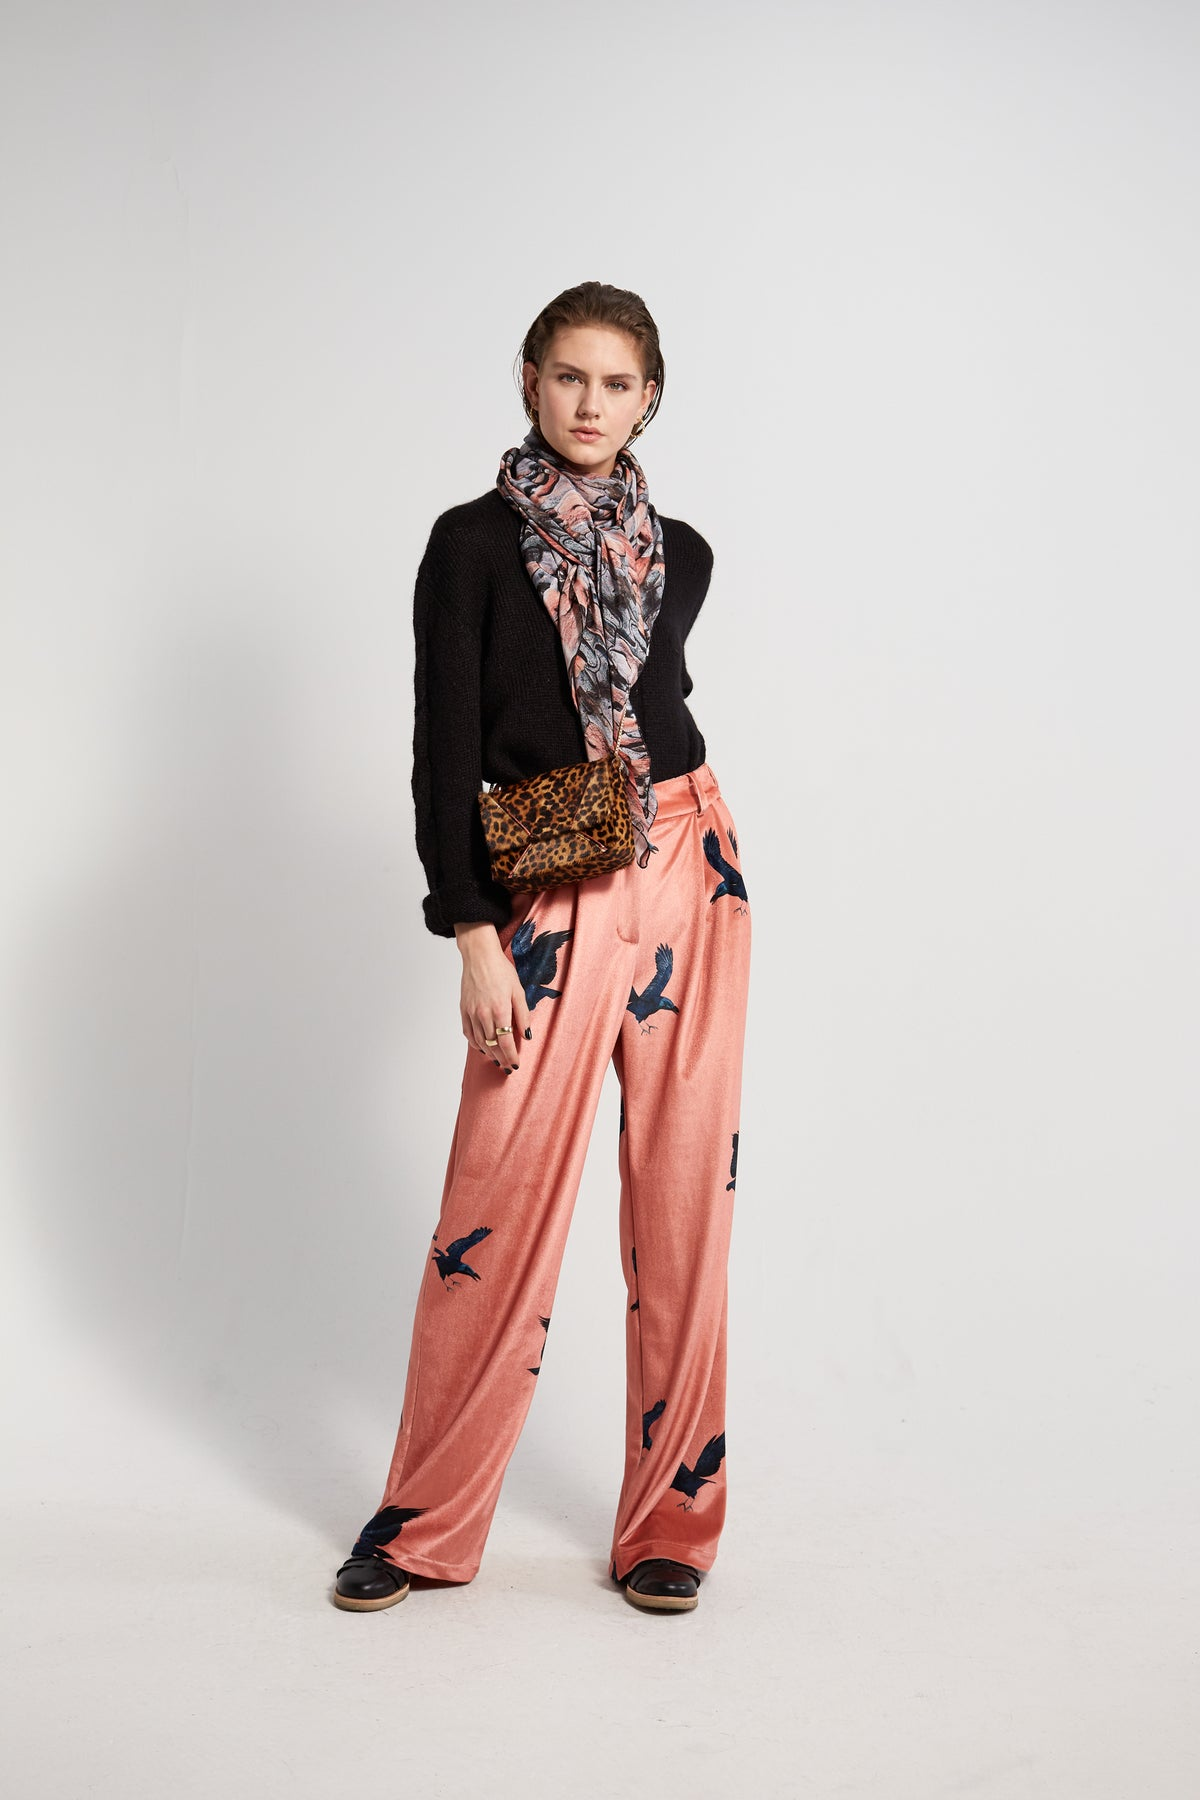 Moor pants in Ravens printed velvet